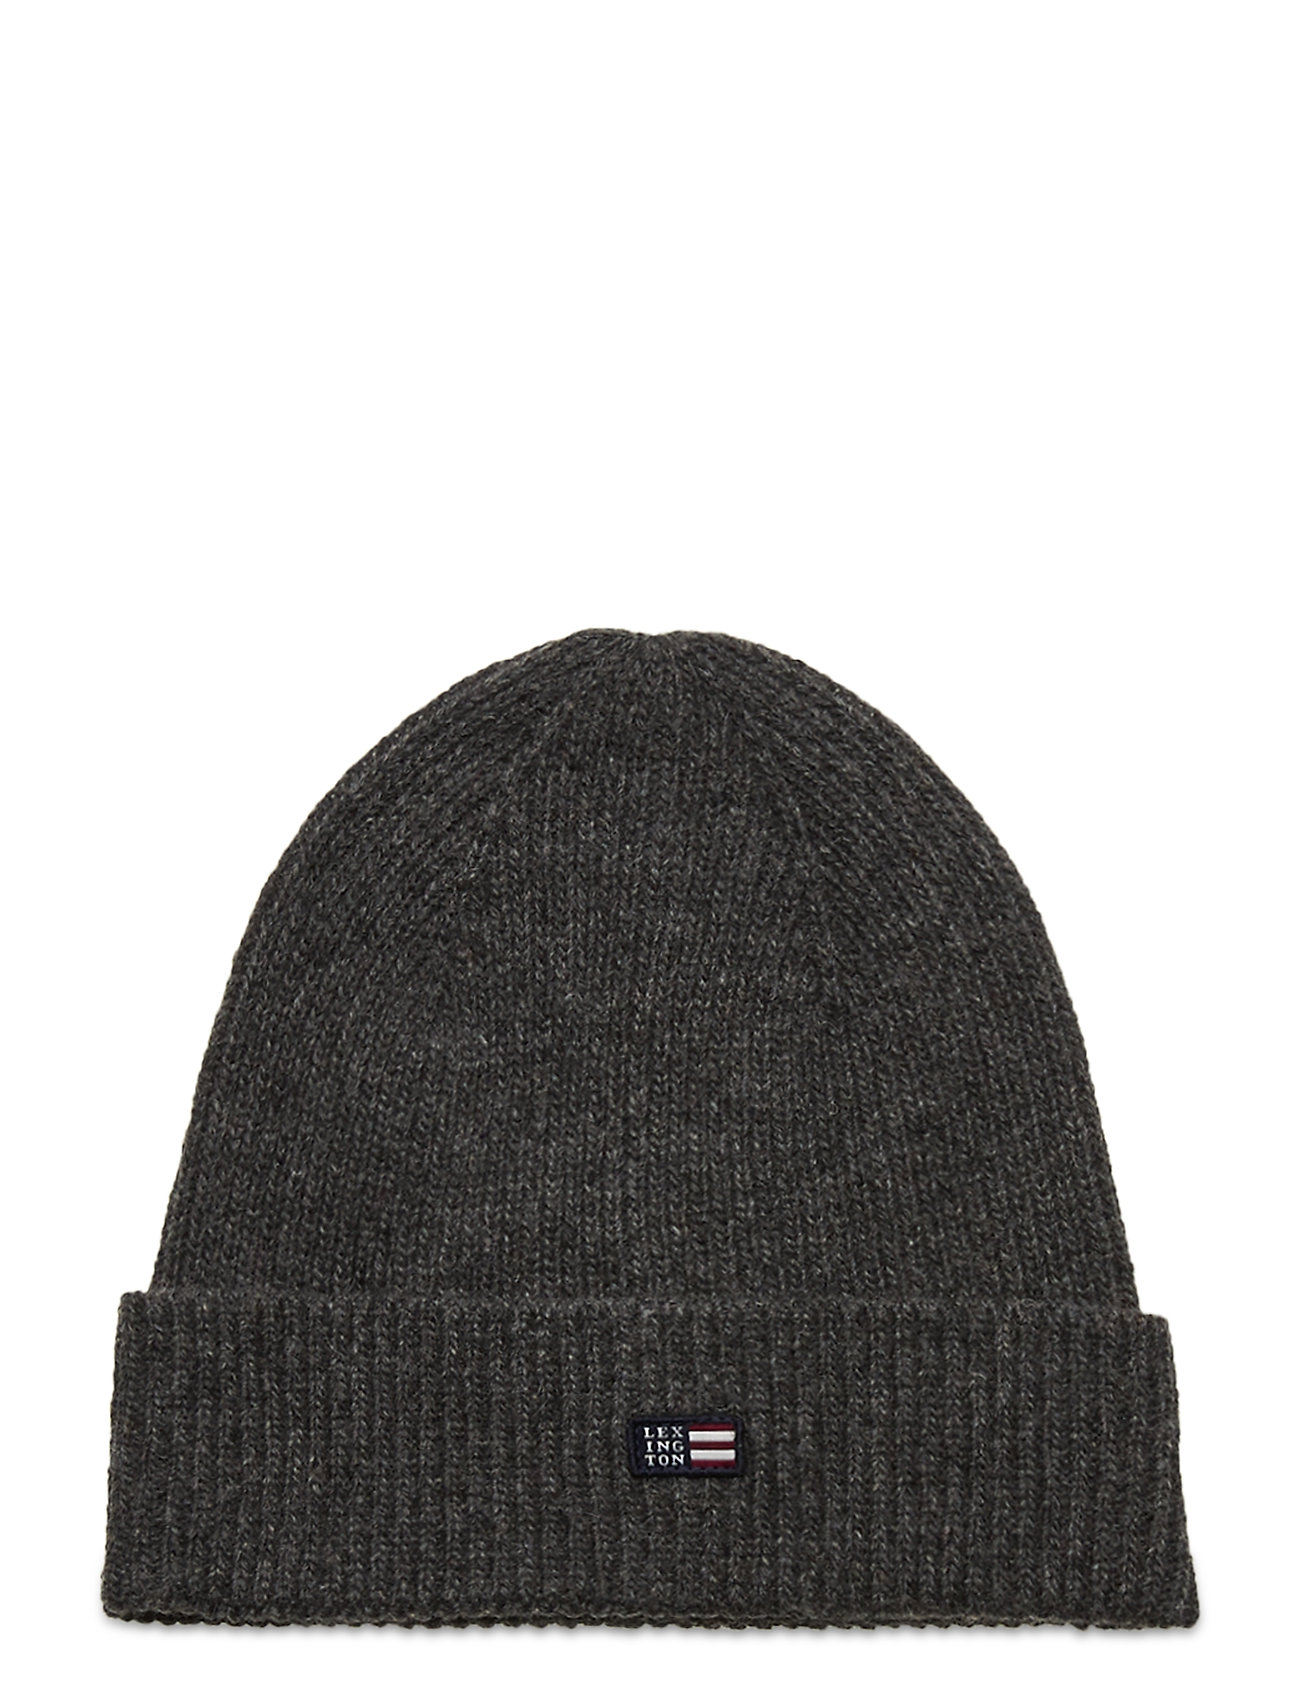 Image of Stockton Lambswool Beanie Accessories Headwear Beanies Grå Lexington Clothing (3454943739)